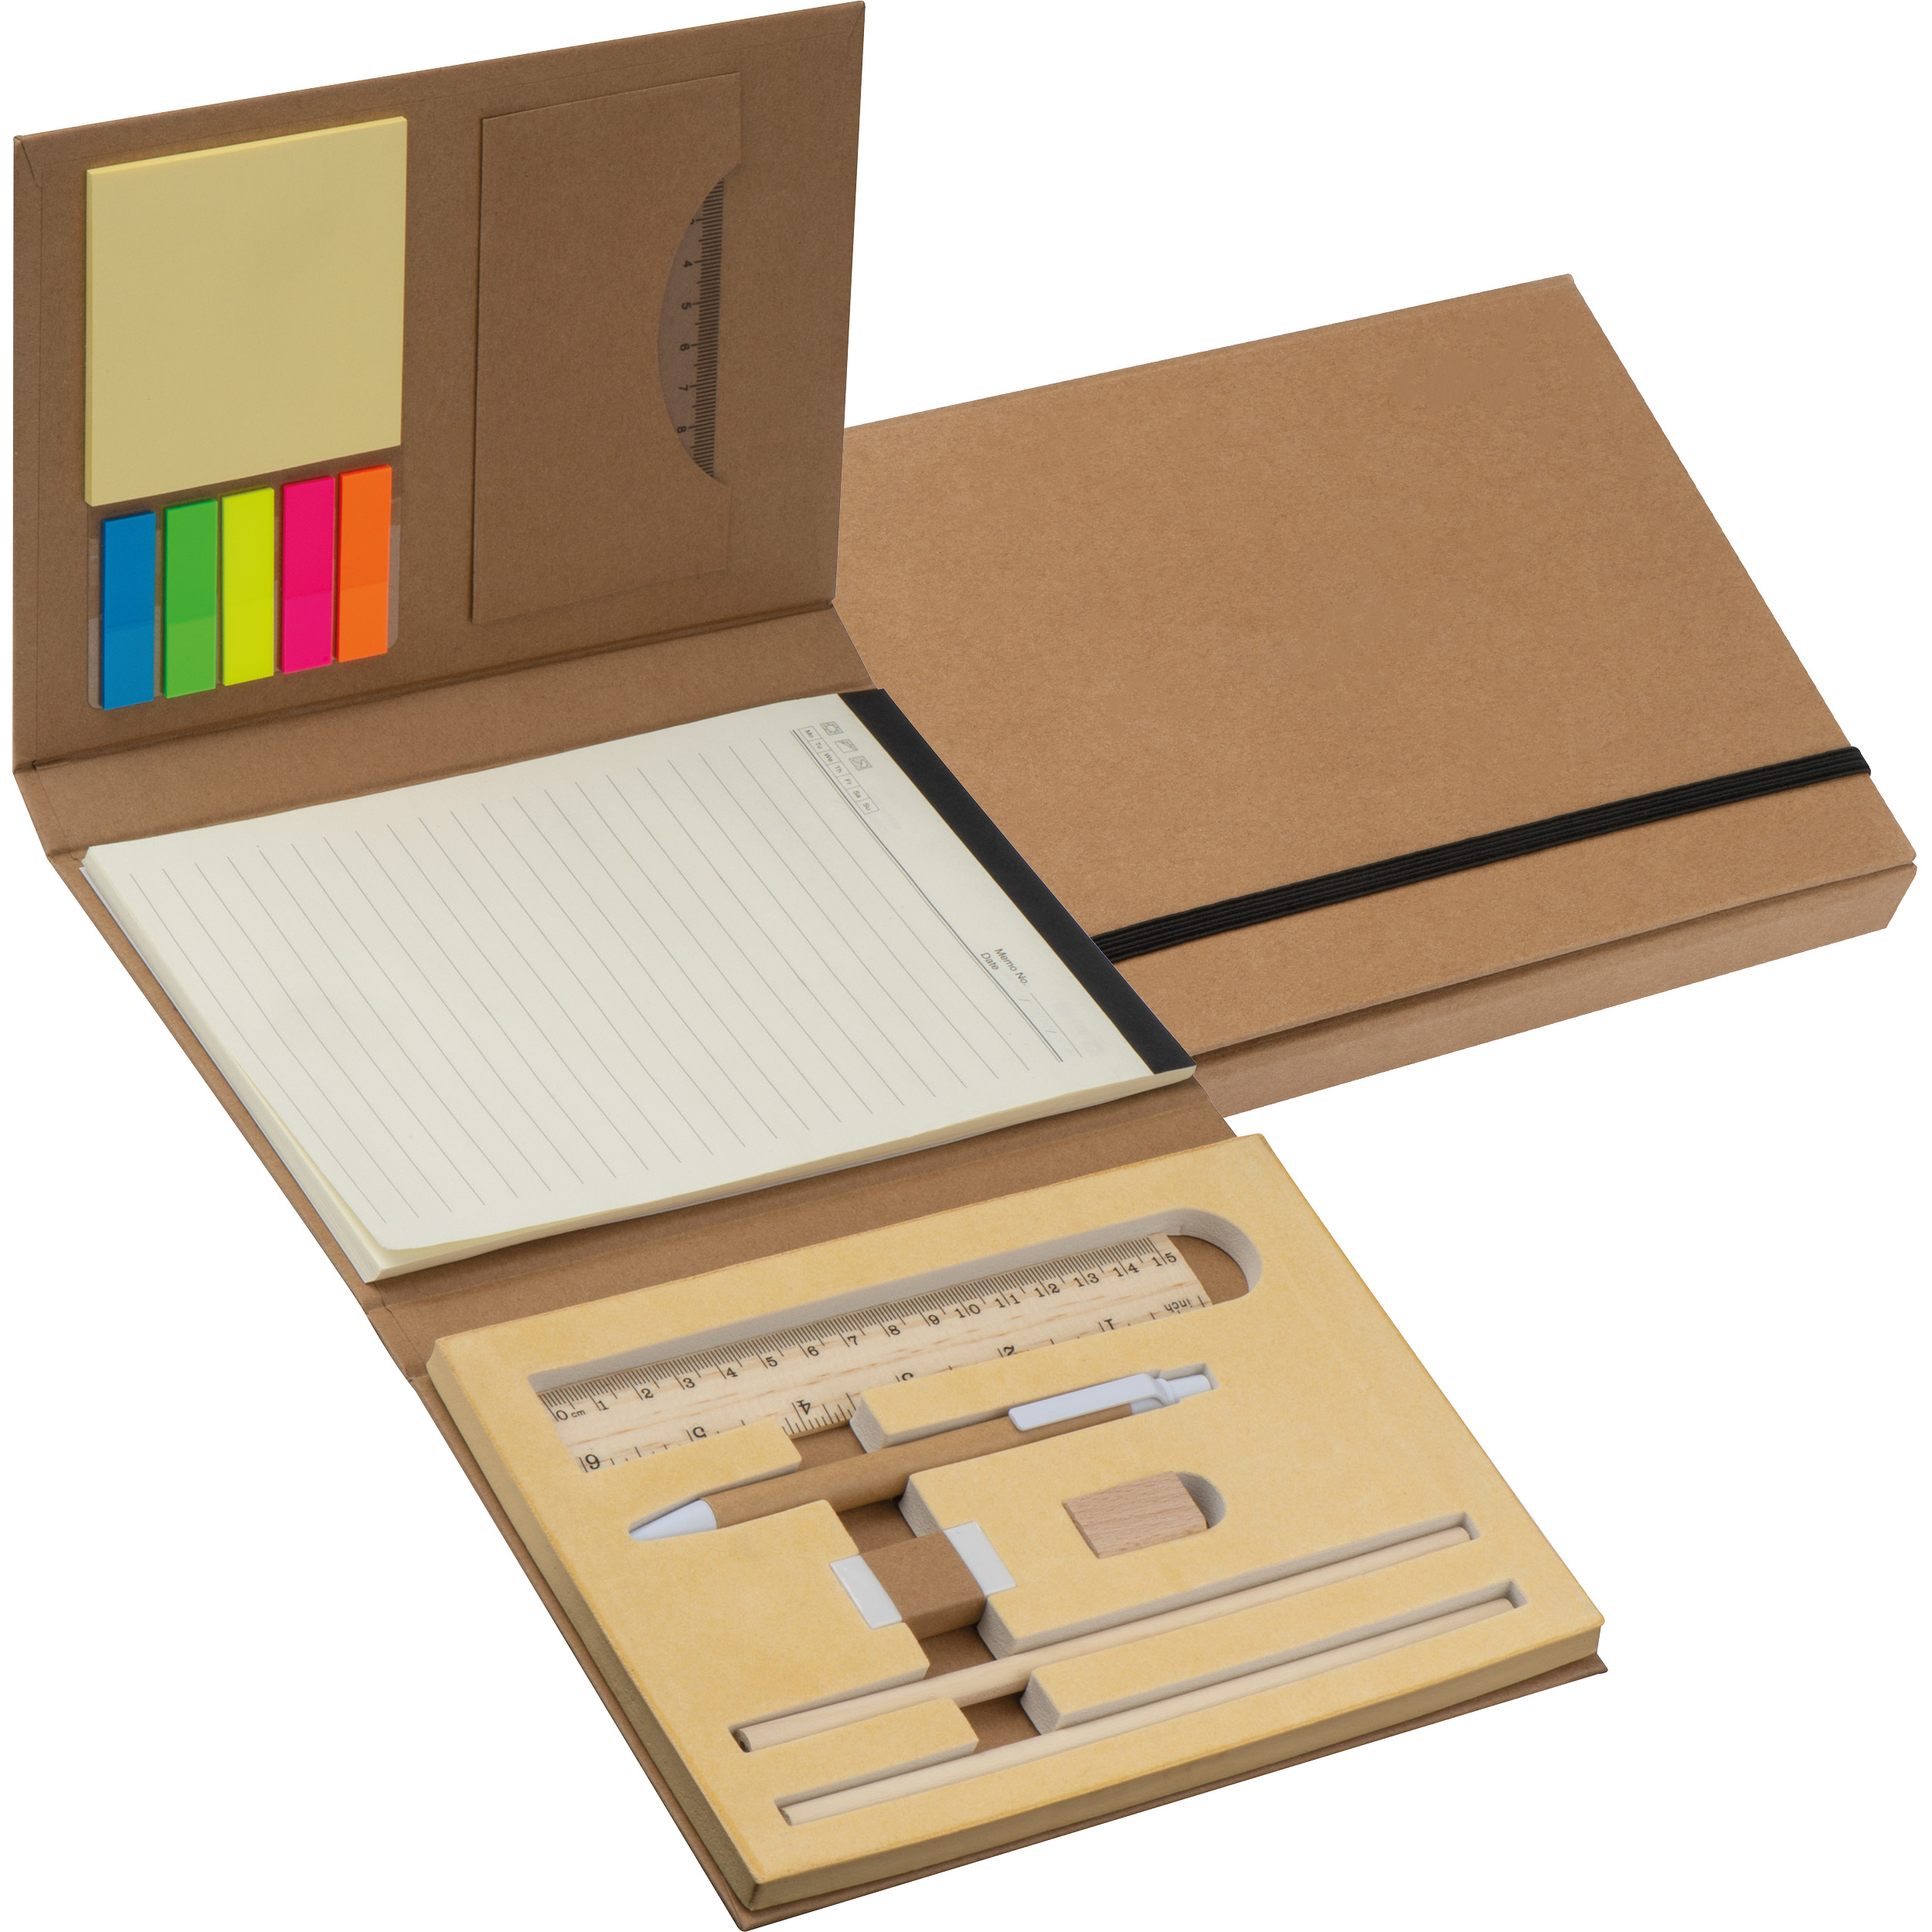 Writing case with cardboard cover, ruler, writing pad and adhesive markers